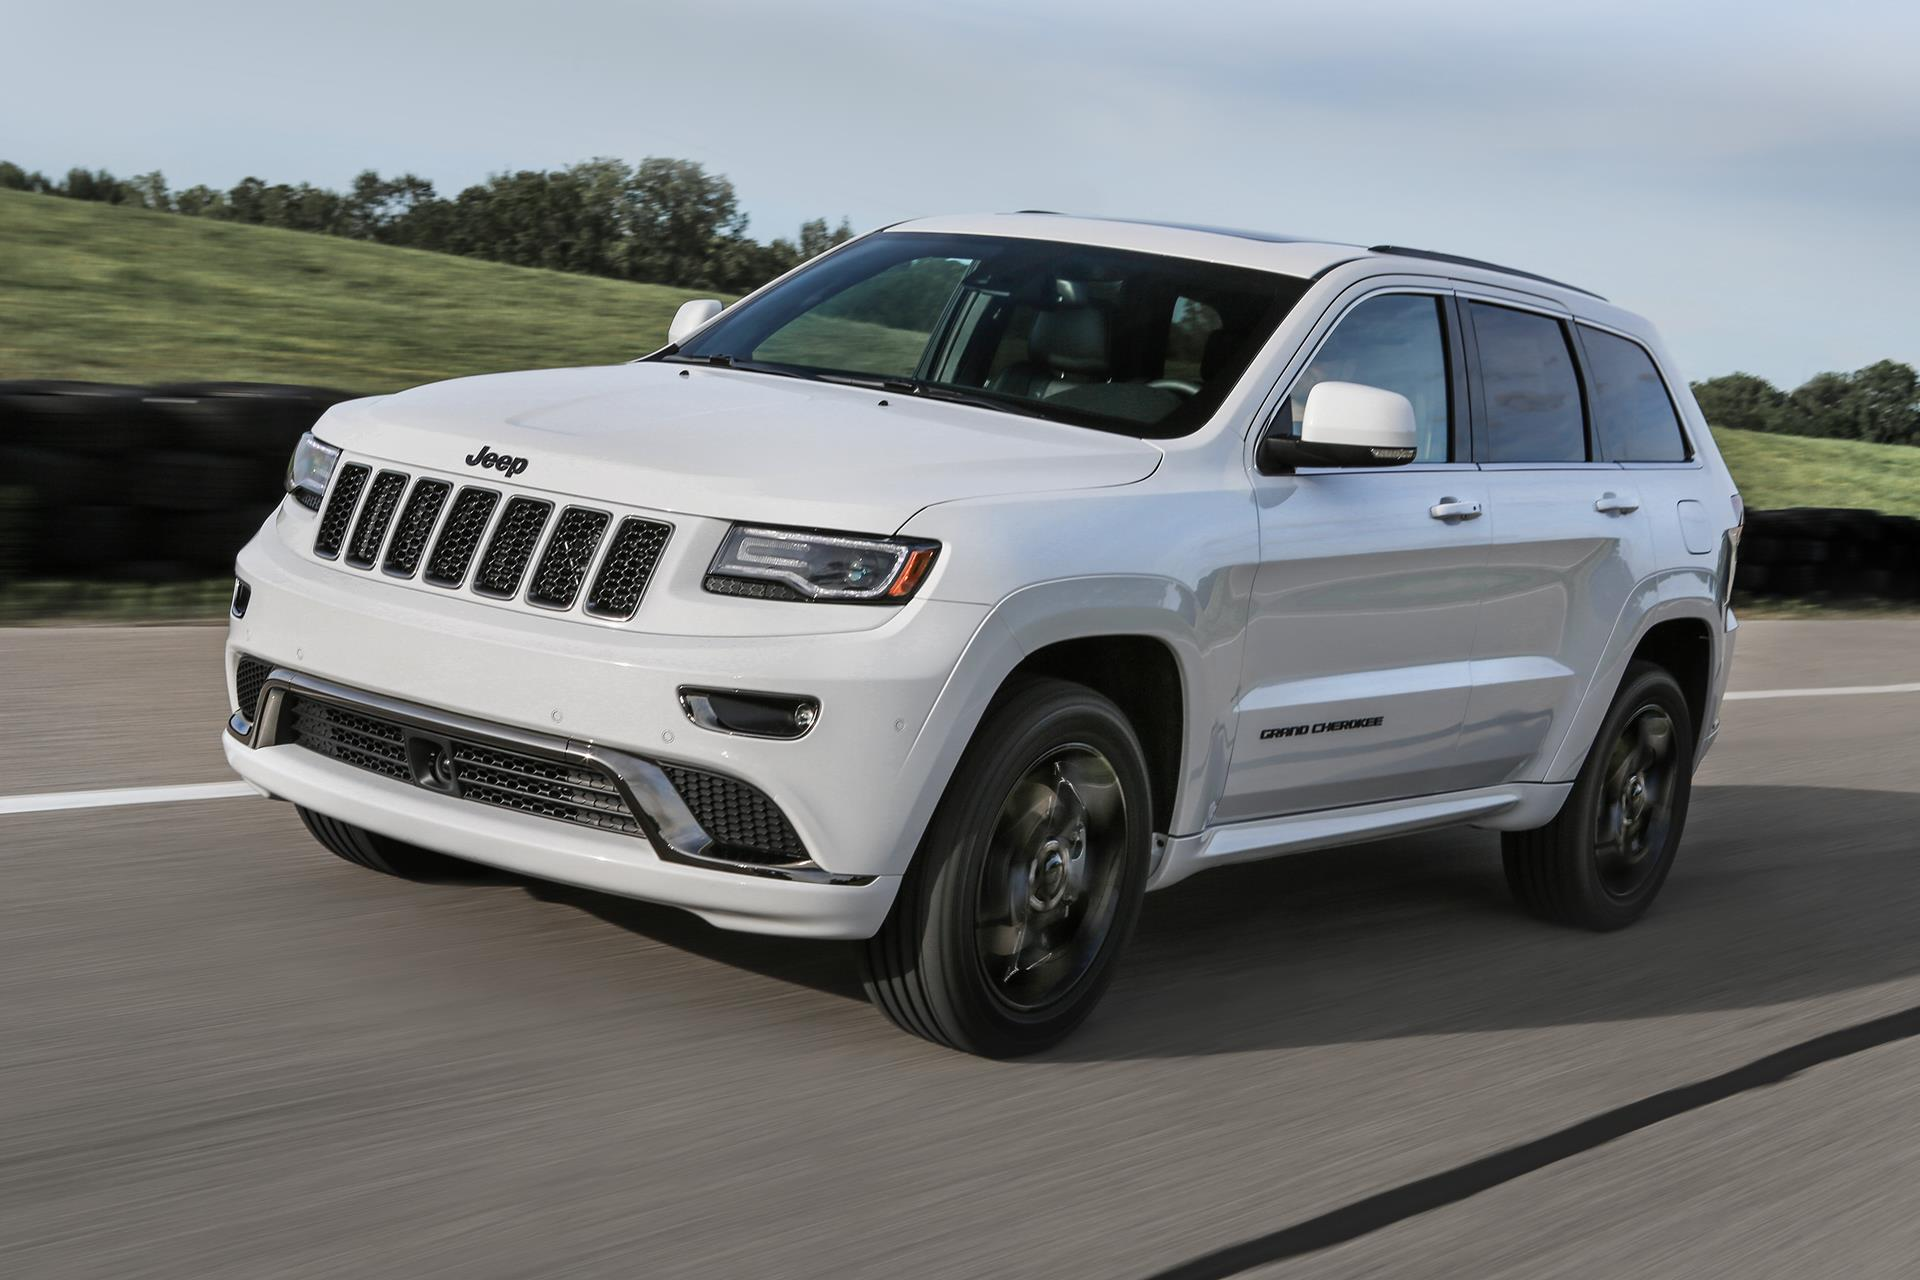 2016 jeep grand cherokee. Black Bedroom Furniture Sets. Home Design Ideas